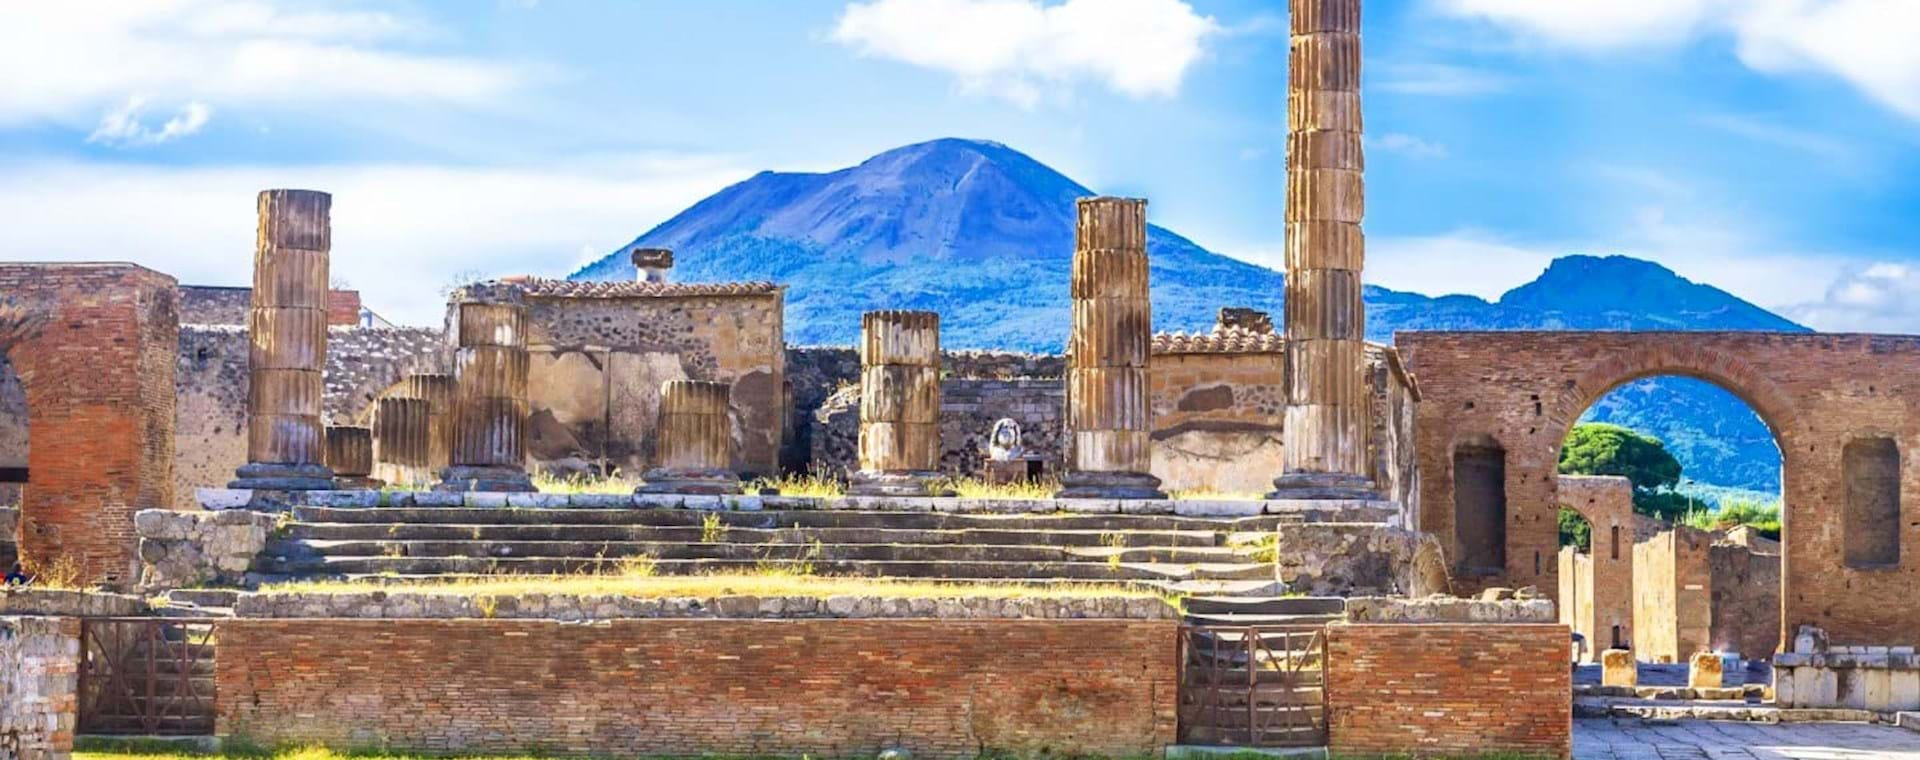 Guided Day Trip: Pompeii & Mt. Vesuvius Volcano from Rome